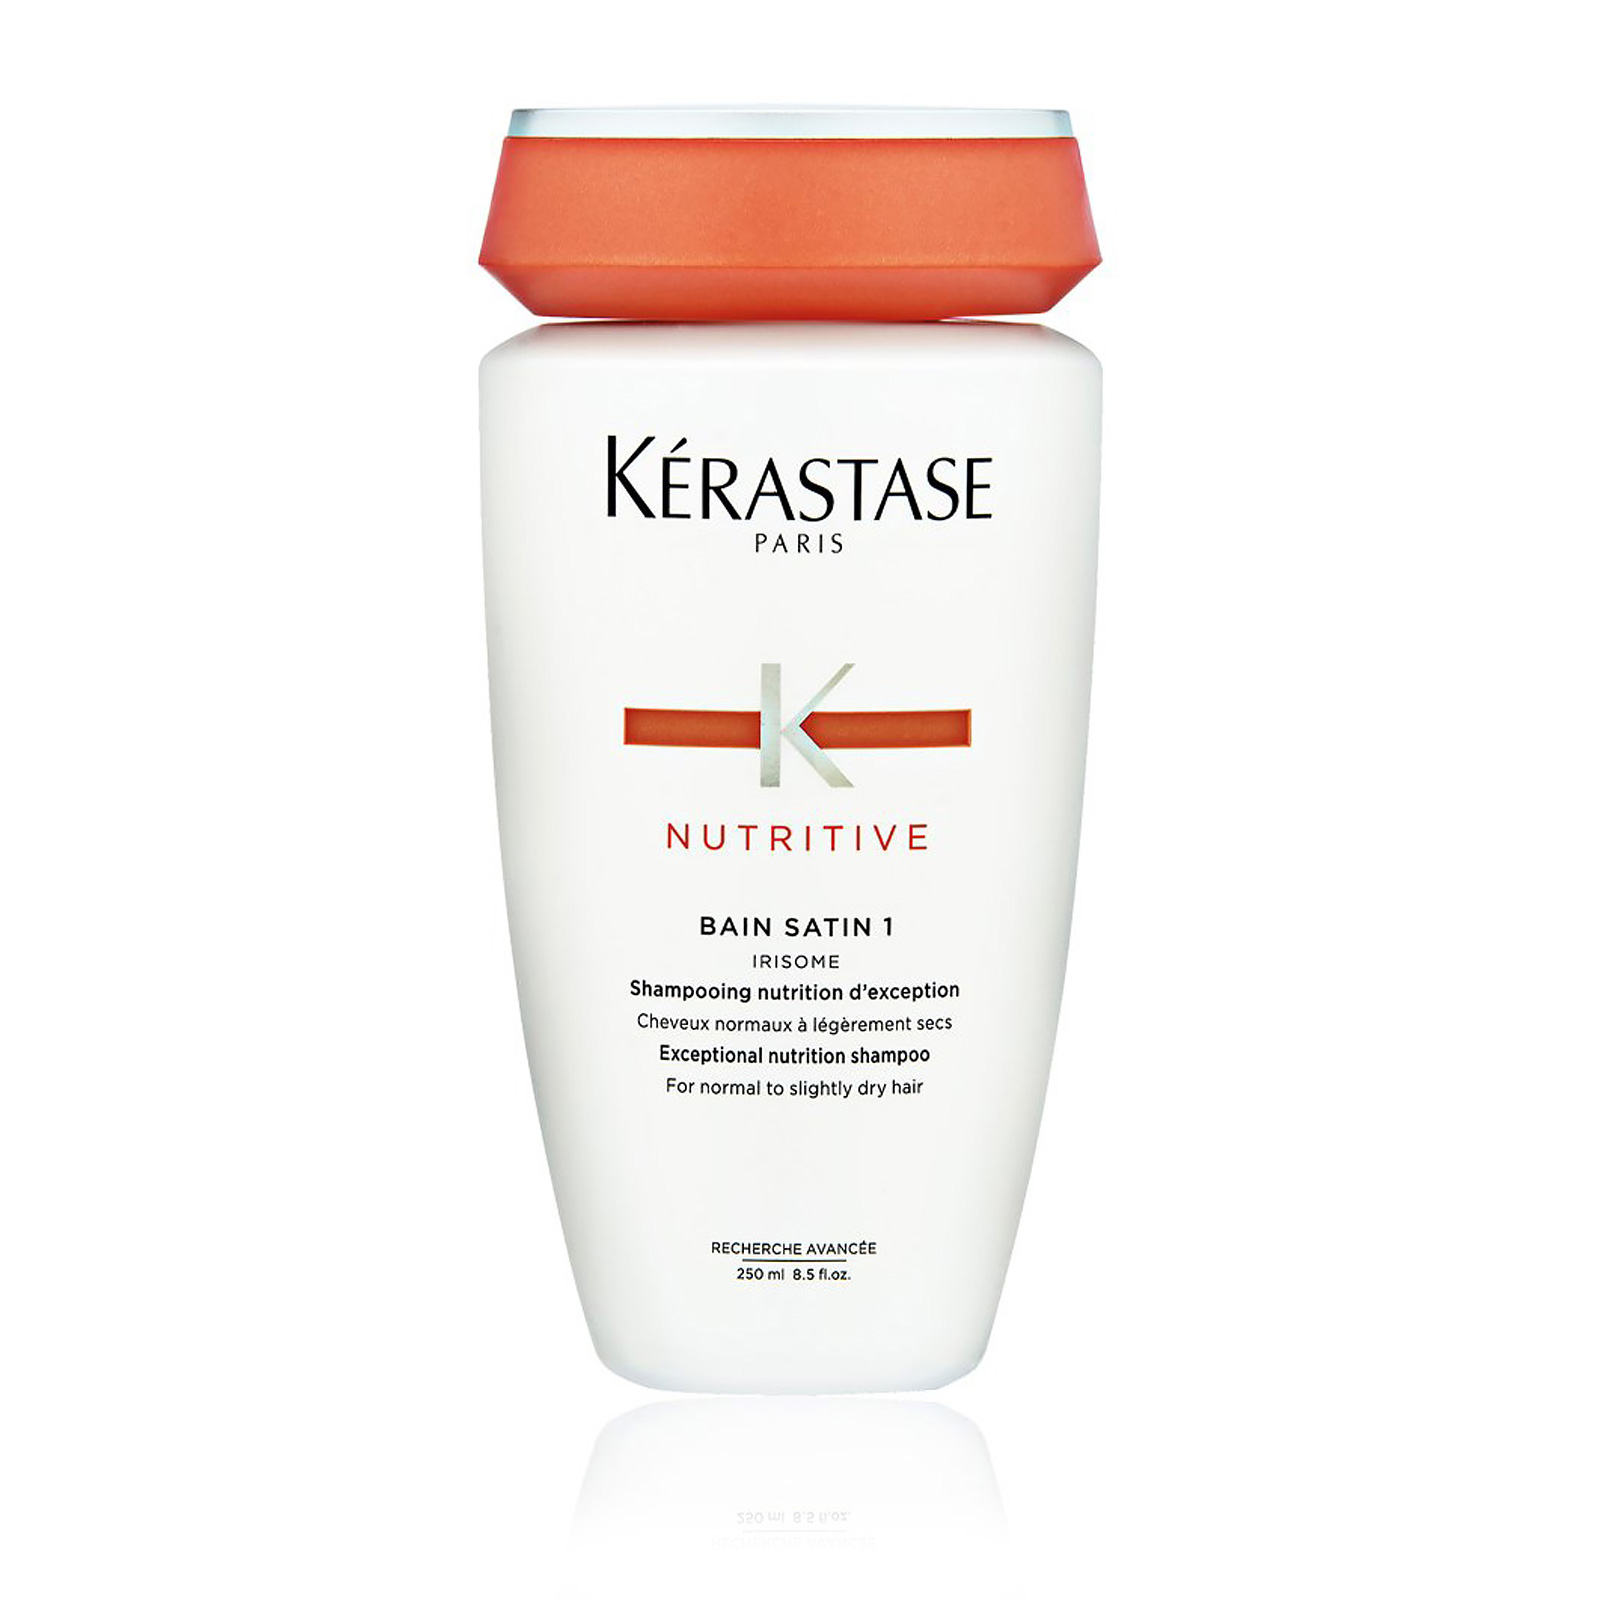 Nutritive Bain Satin 1 Irisome Exceptional Nutrition Shampoo (For Normal To Slightly Dry Hair)